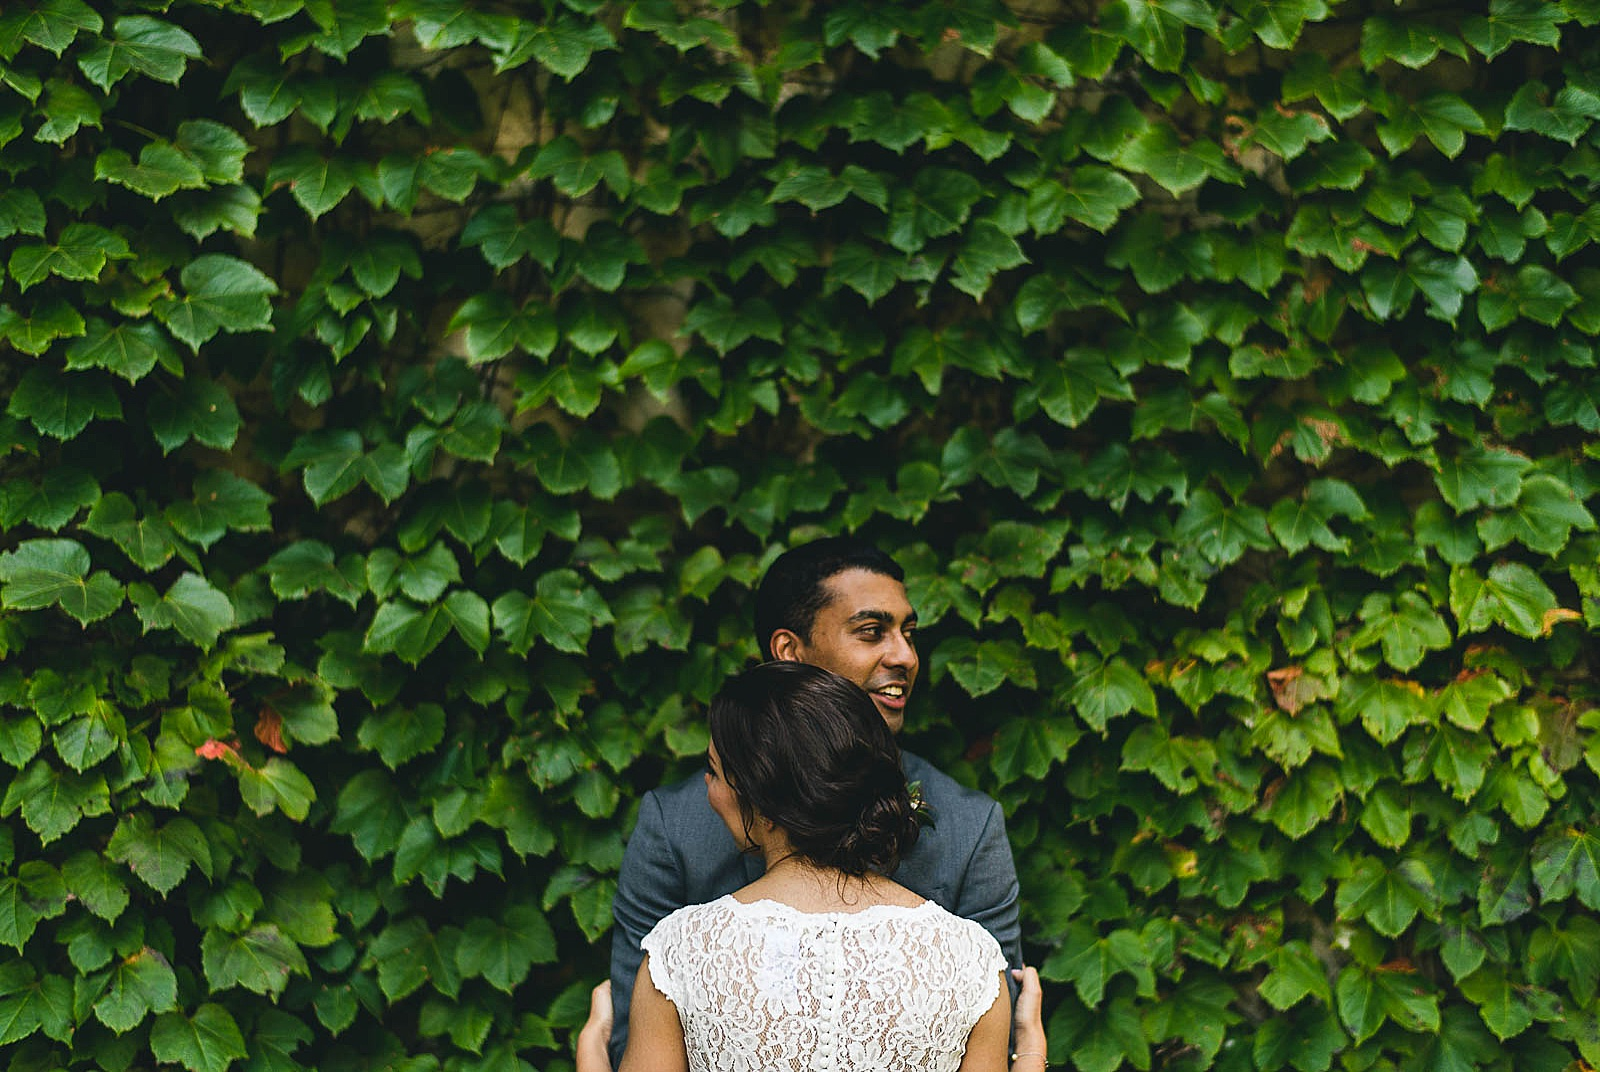 17 wedding photos i like - Wedding at Bridgeport Art Center // Kylie + Sean